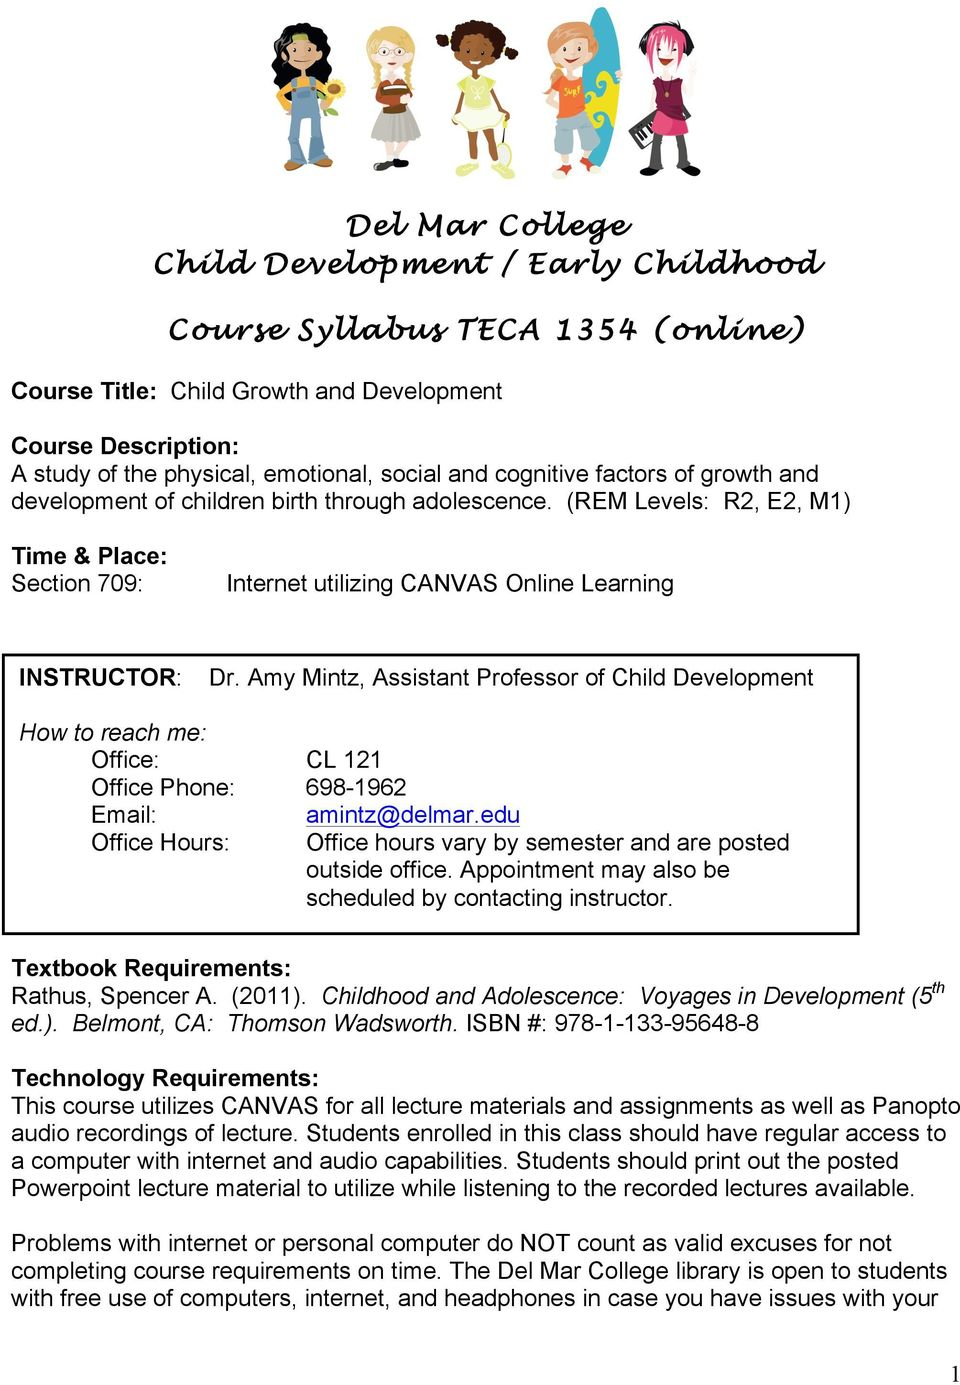 Del Mar College Child Development Early Childhood Course Syllabus